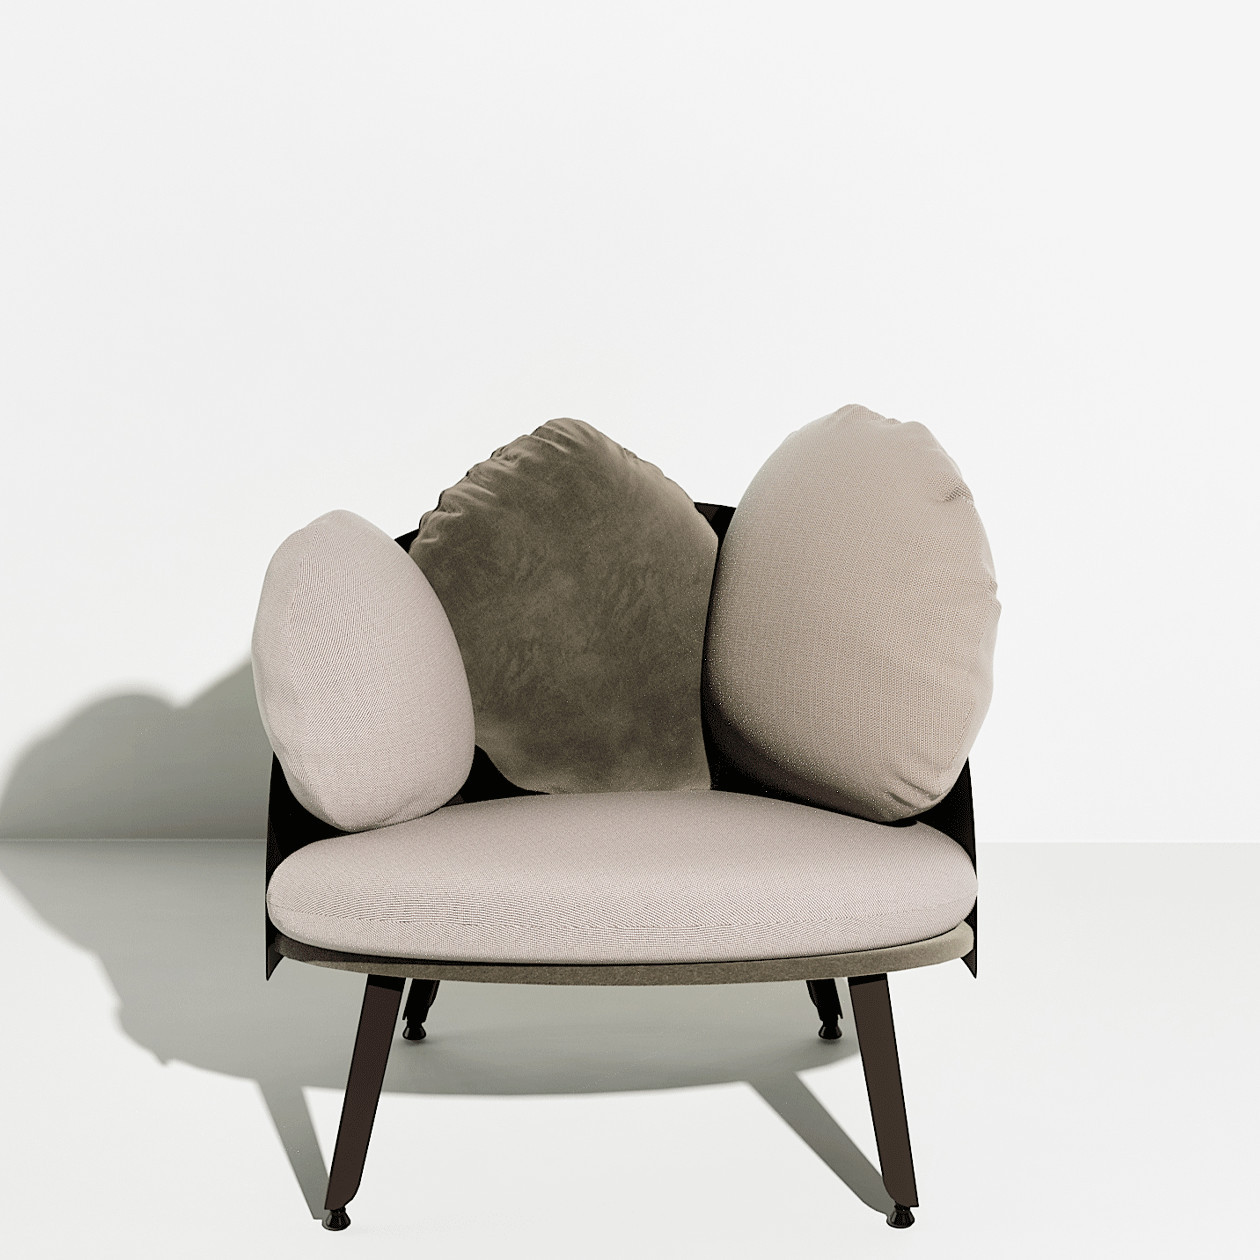 Nubilo Lounge Chair - Designed by Constance Guisset, NUBILO is a sofa and lounge chair series in which the multiplication of cushions evokes the image of a cloud. Softness, comfort, velvet, are accentuated by the association of three high quality materials. The cushions vary in their size and form and ask to be played with. Attached to the sofa structure by elastics and pressure they can be moved and repositioned according to desire  | Matter of Stuff